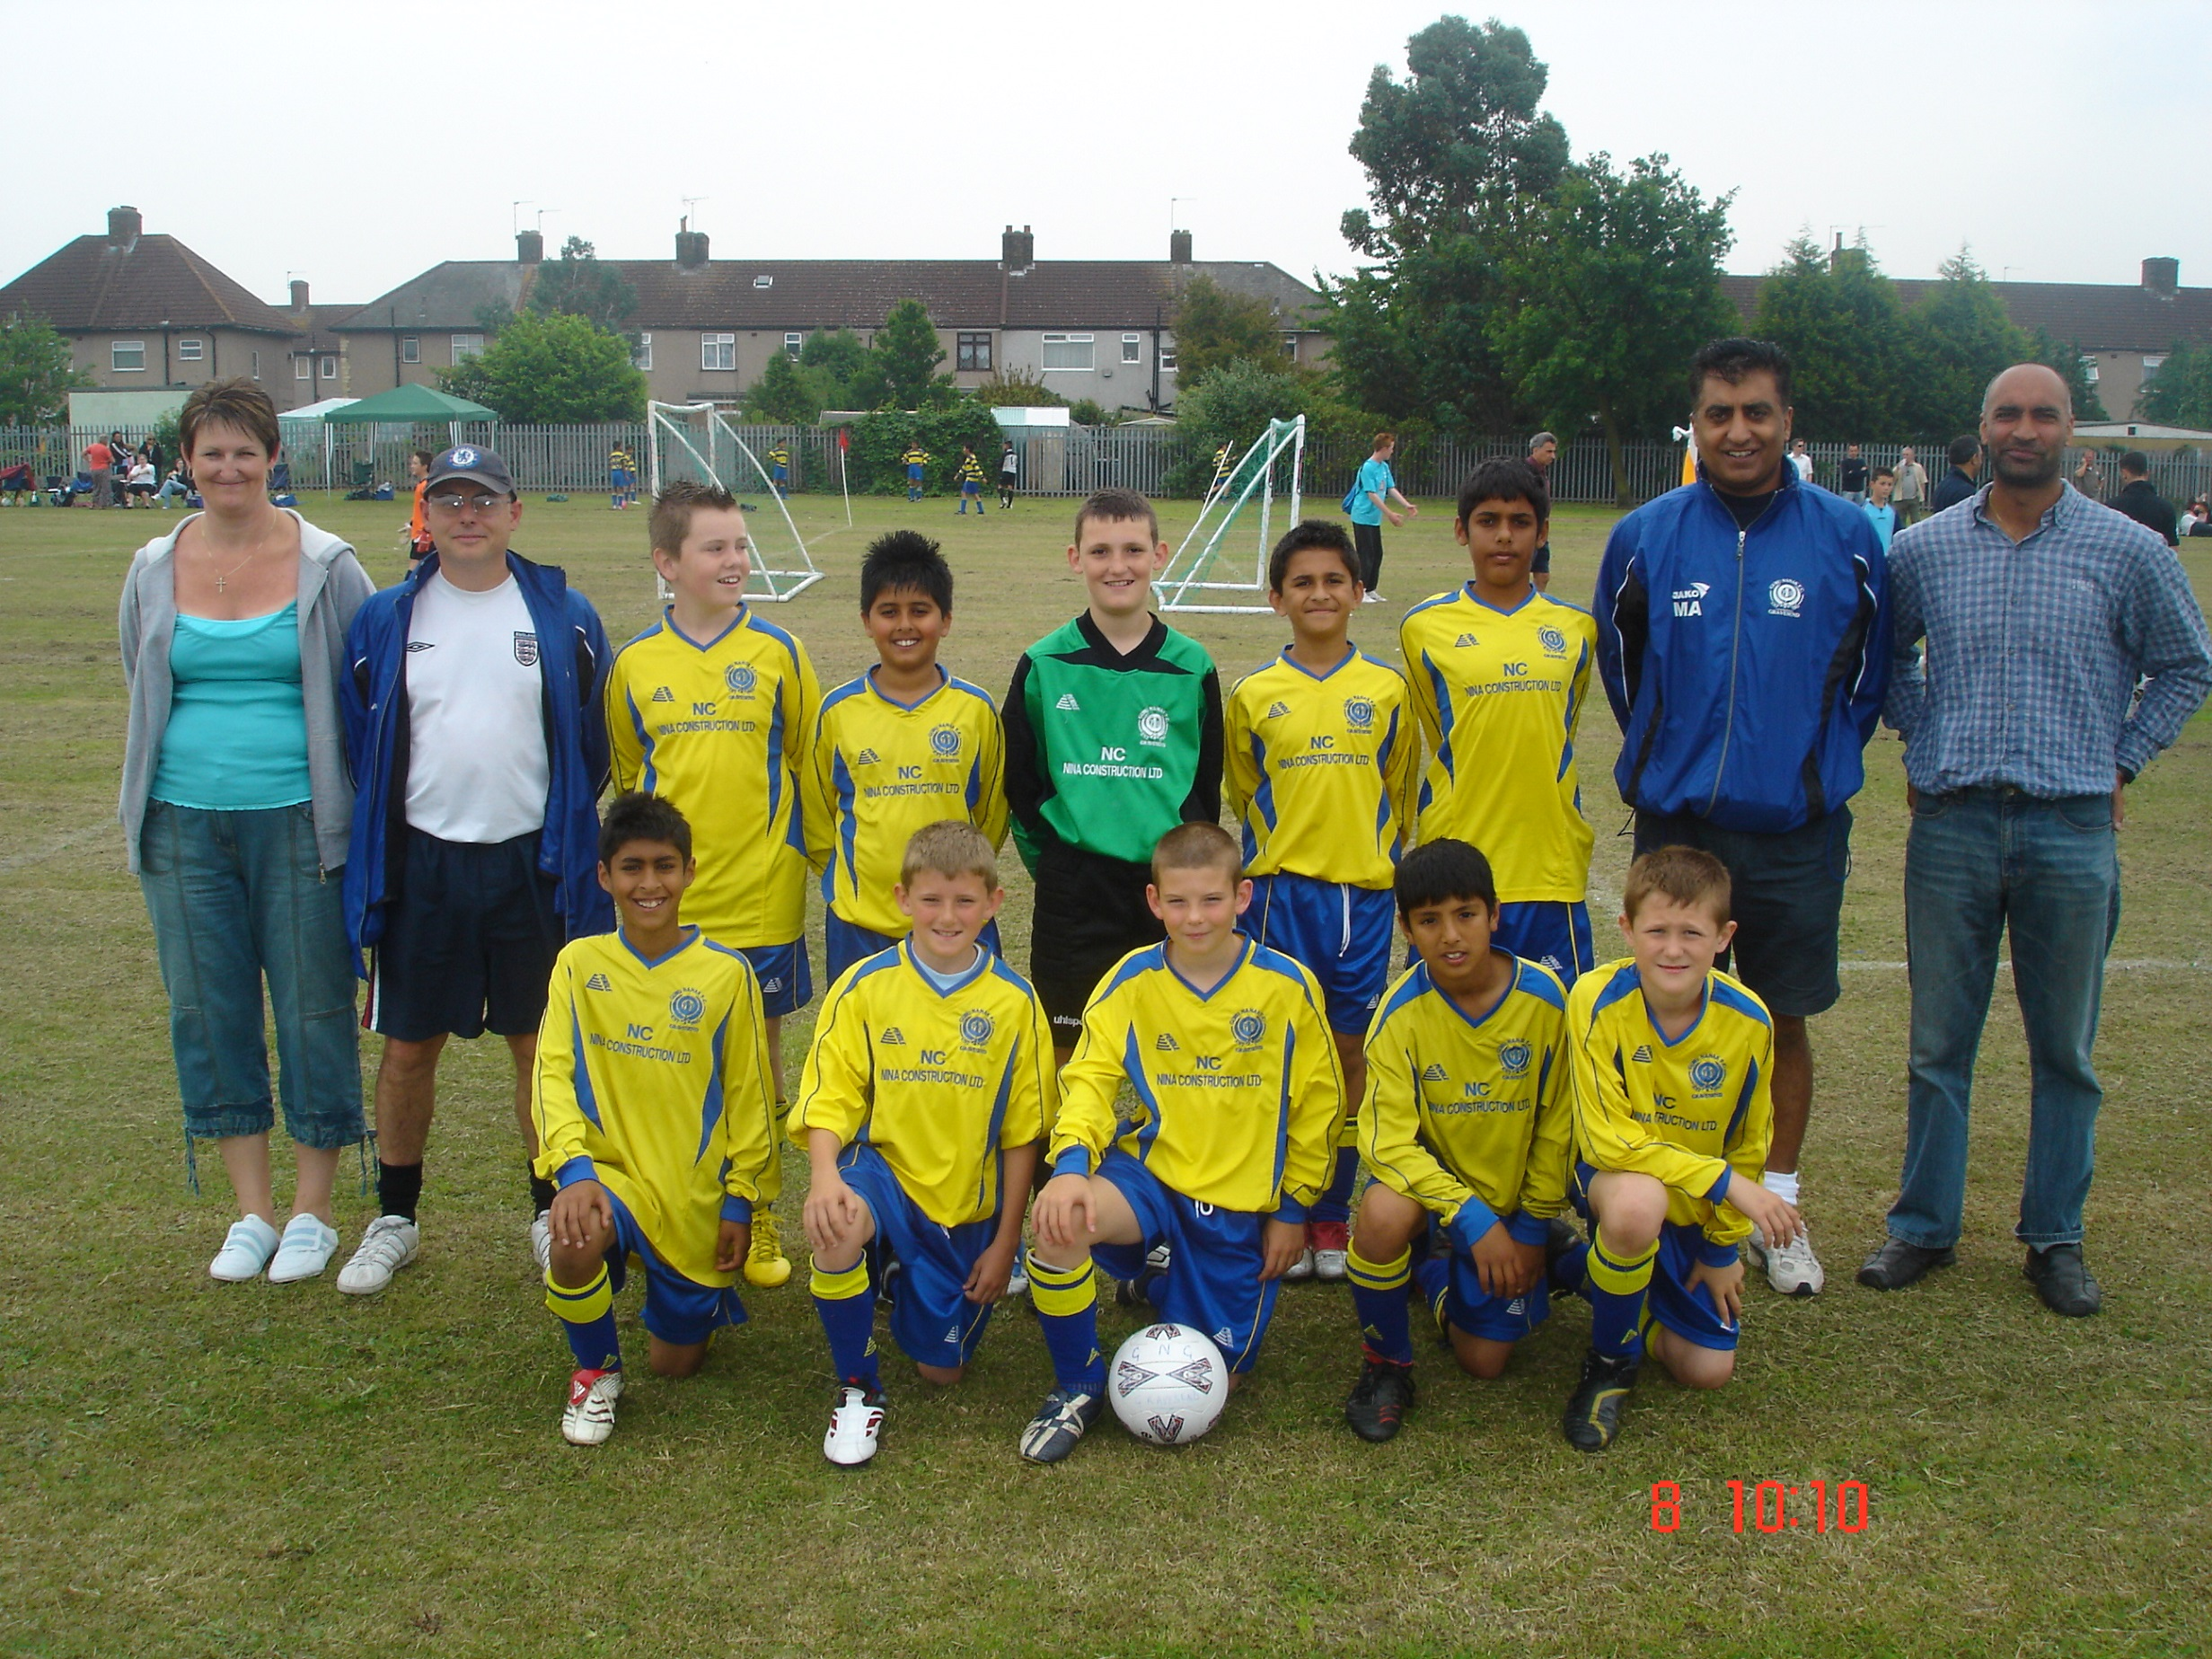 U11s at Barking 2007